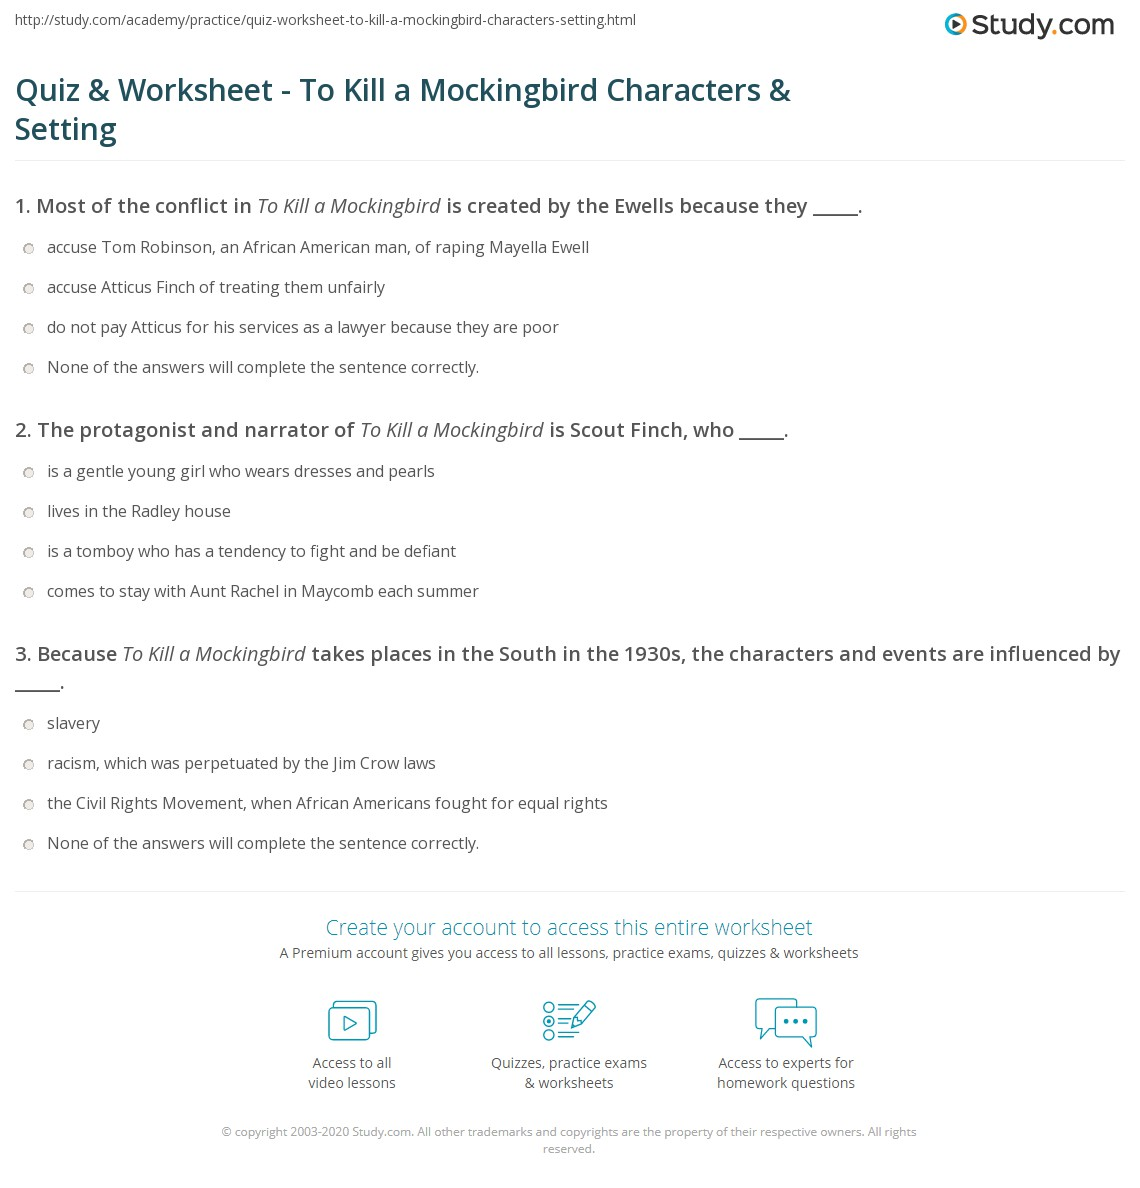 quiz worksheet to kill a mockingbird characters setting print to kill a mockingbird characters setting author worksheet